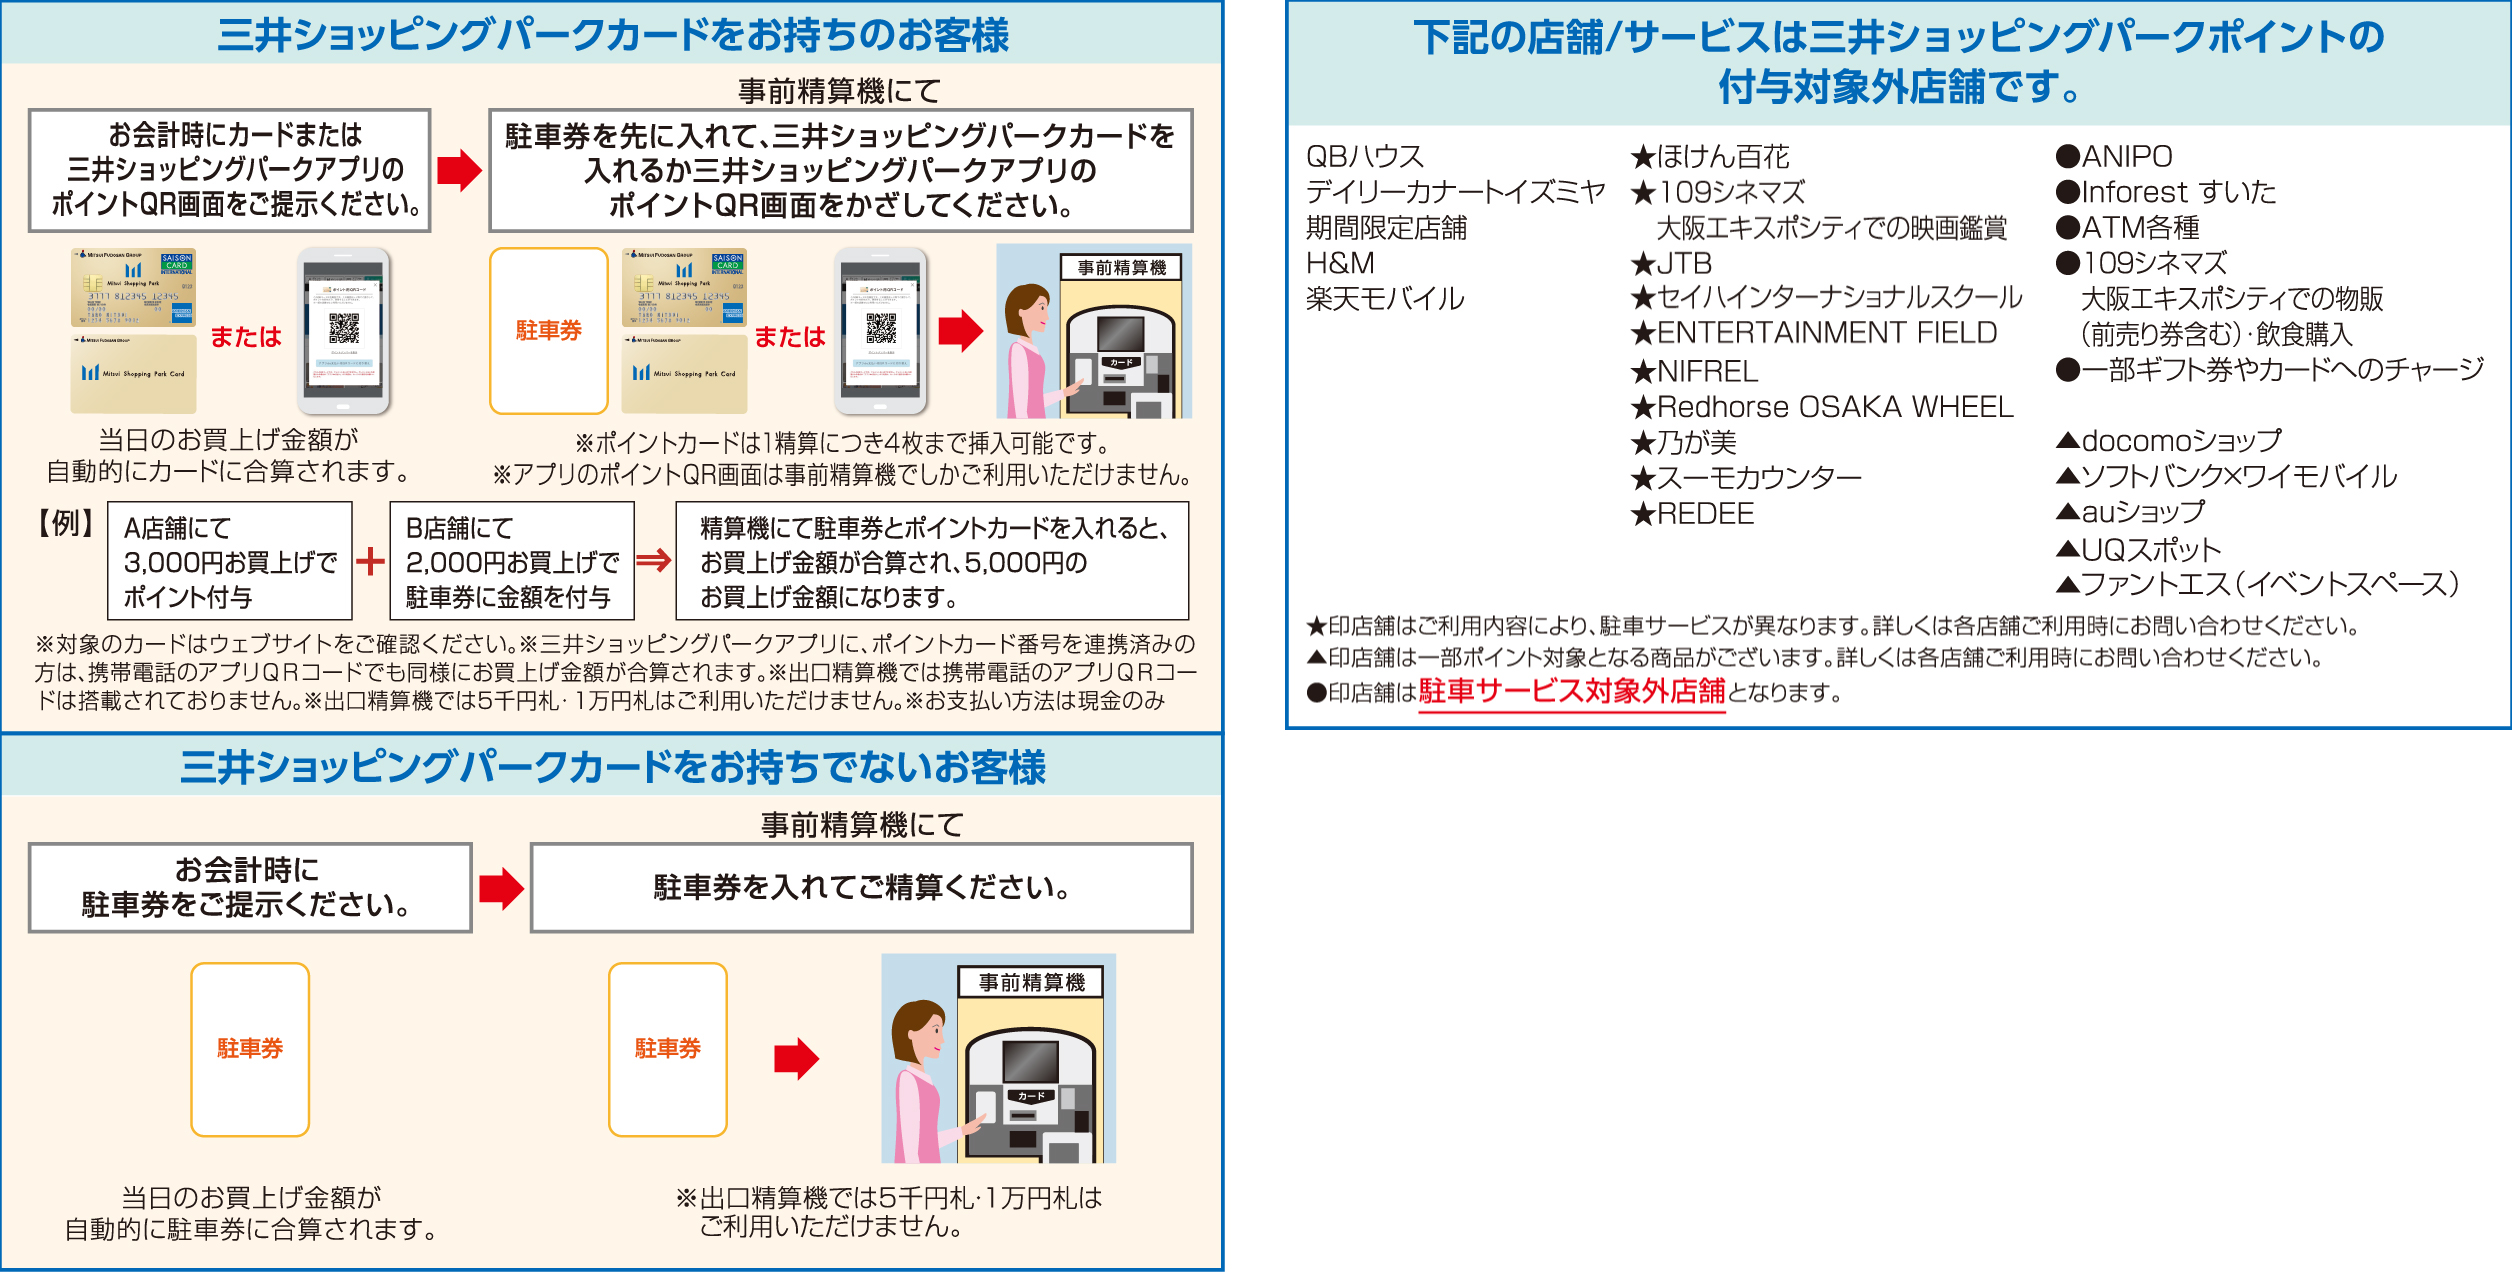 About outside store targeted for grant of Mitsui Shopping Park customer, customer who does not have Mitsui Shopping Park card having Mitsui Shopping Park card